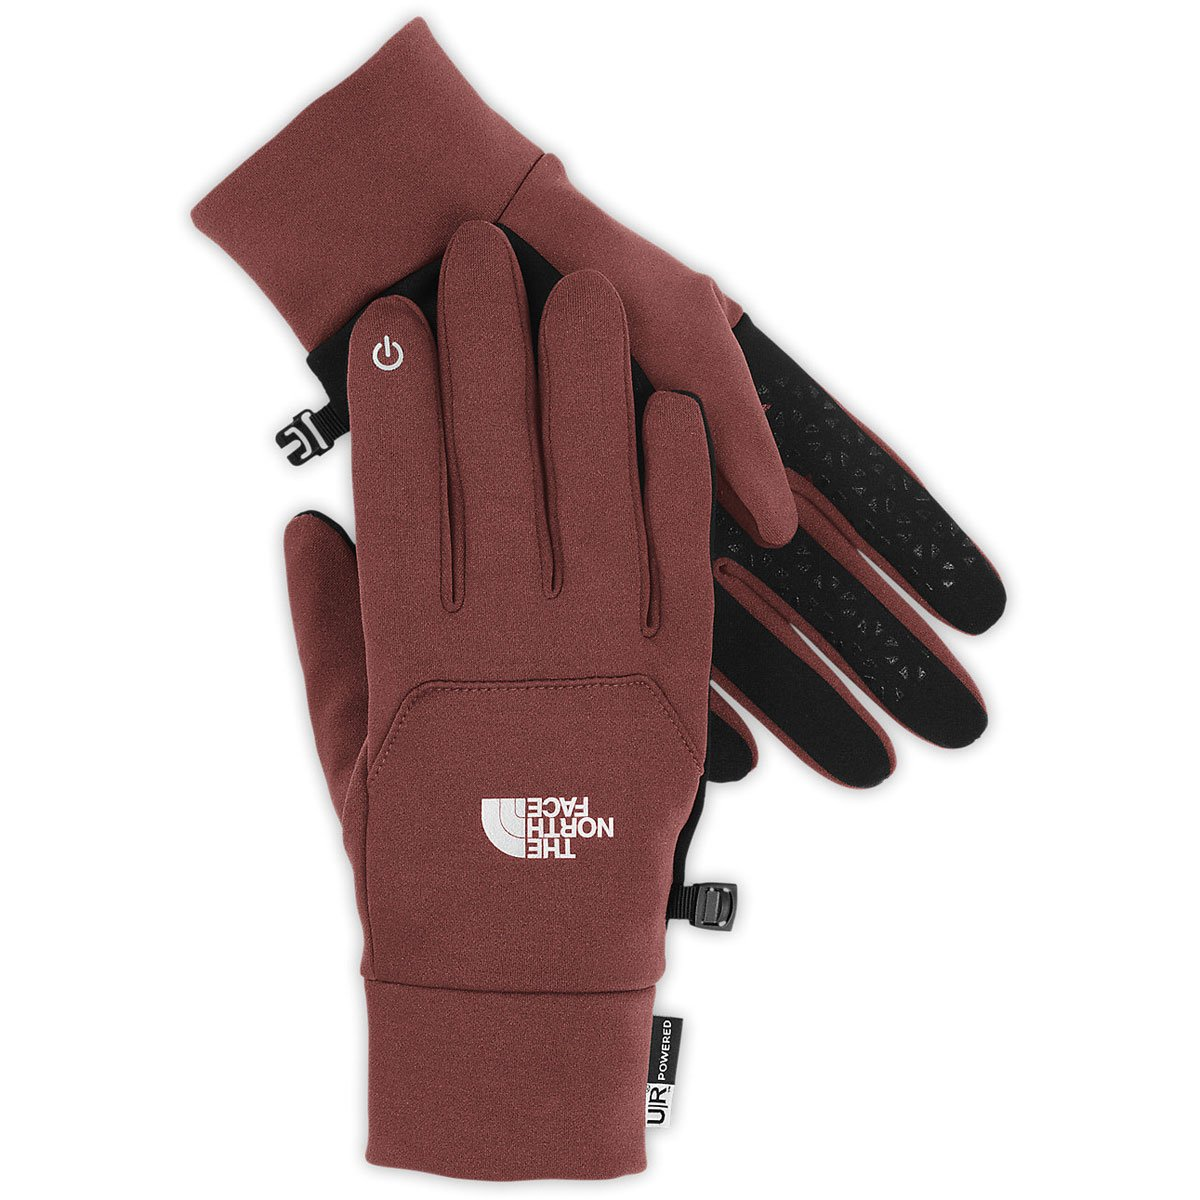 The North Face Etip Gloves Cherry Stain Brown XL